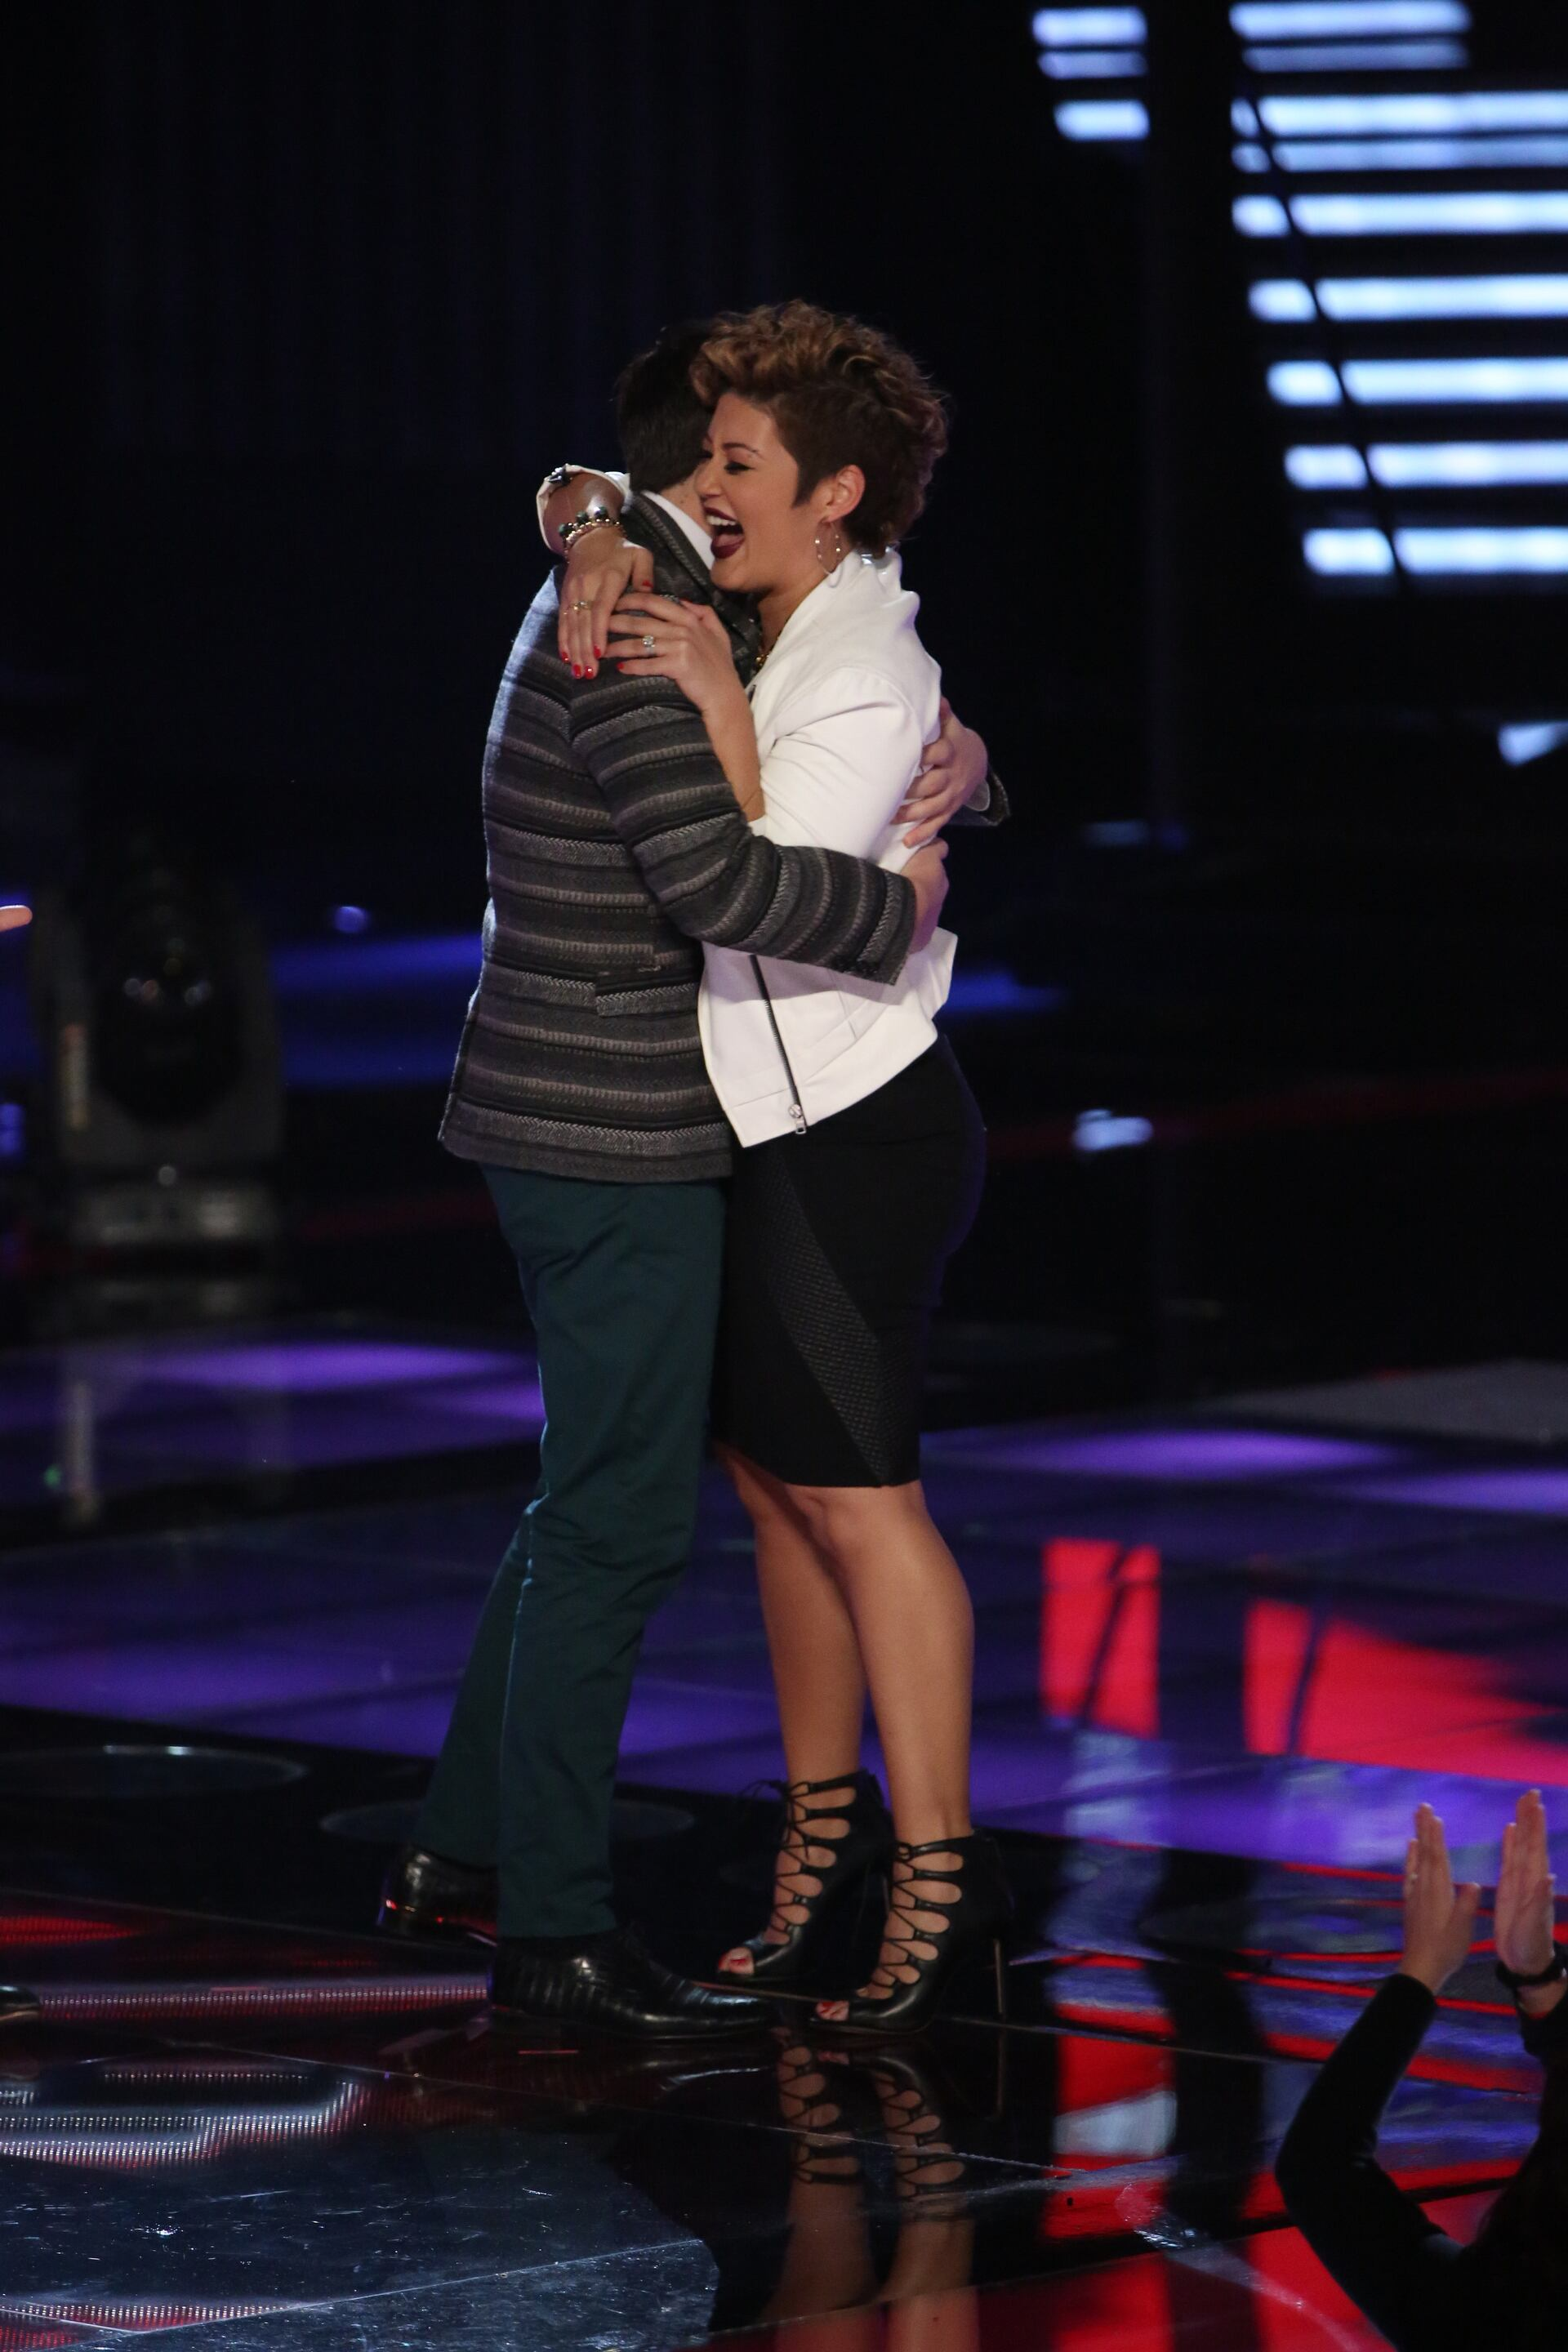 """For the Top 12, Tessanne went back to Emeli Sande, this time taking on the singer's """"My Kind of Love."""" Once again, she blew everyone away, particularly her coach, to advance to the next round."""